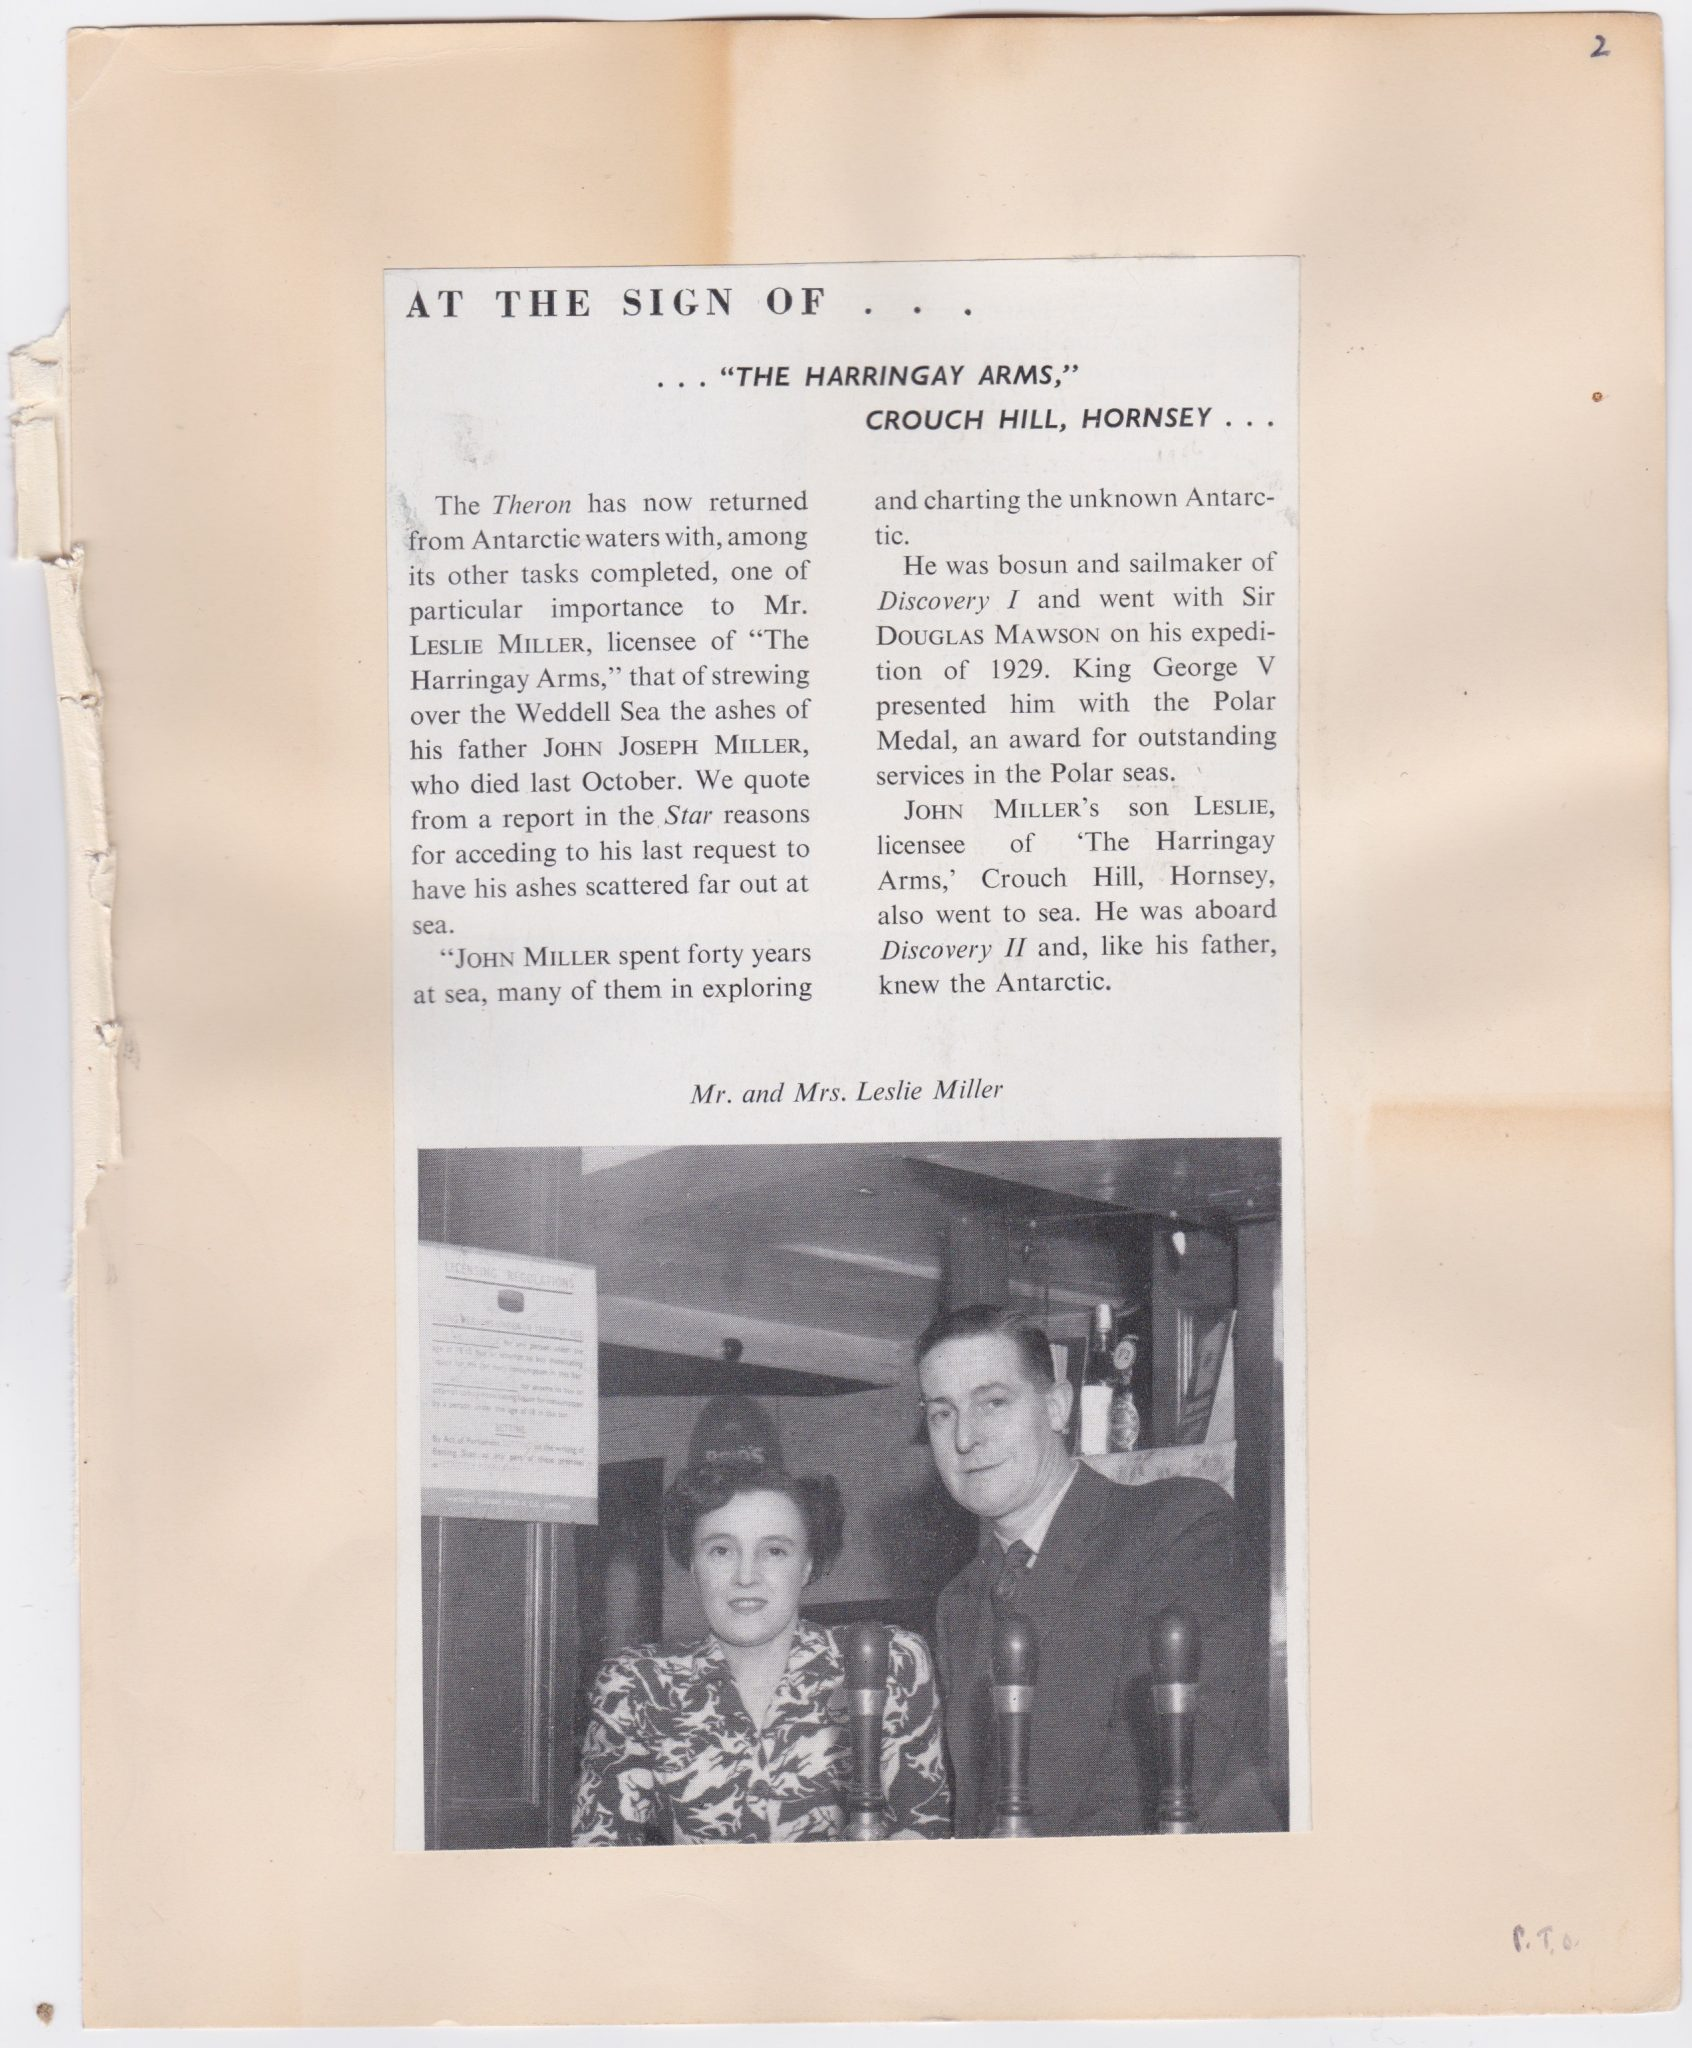 Trade publication article from circa 1956 about the Harringay Arms, London.